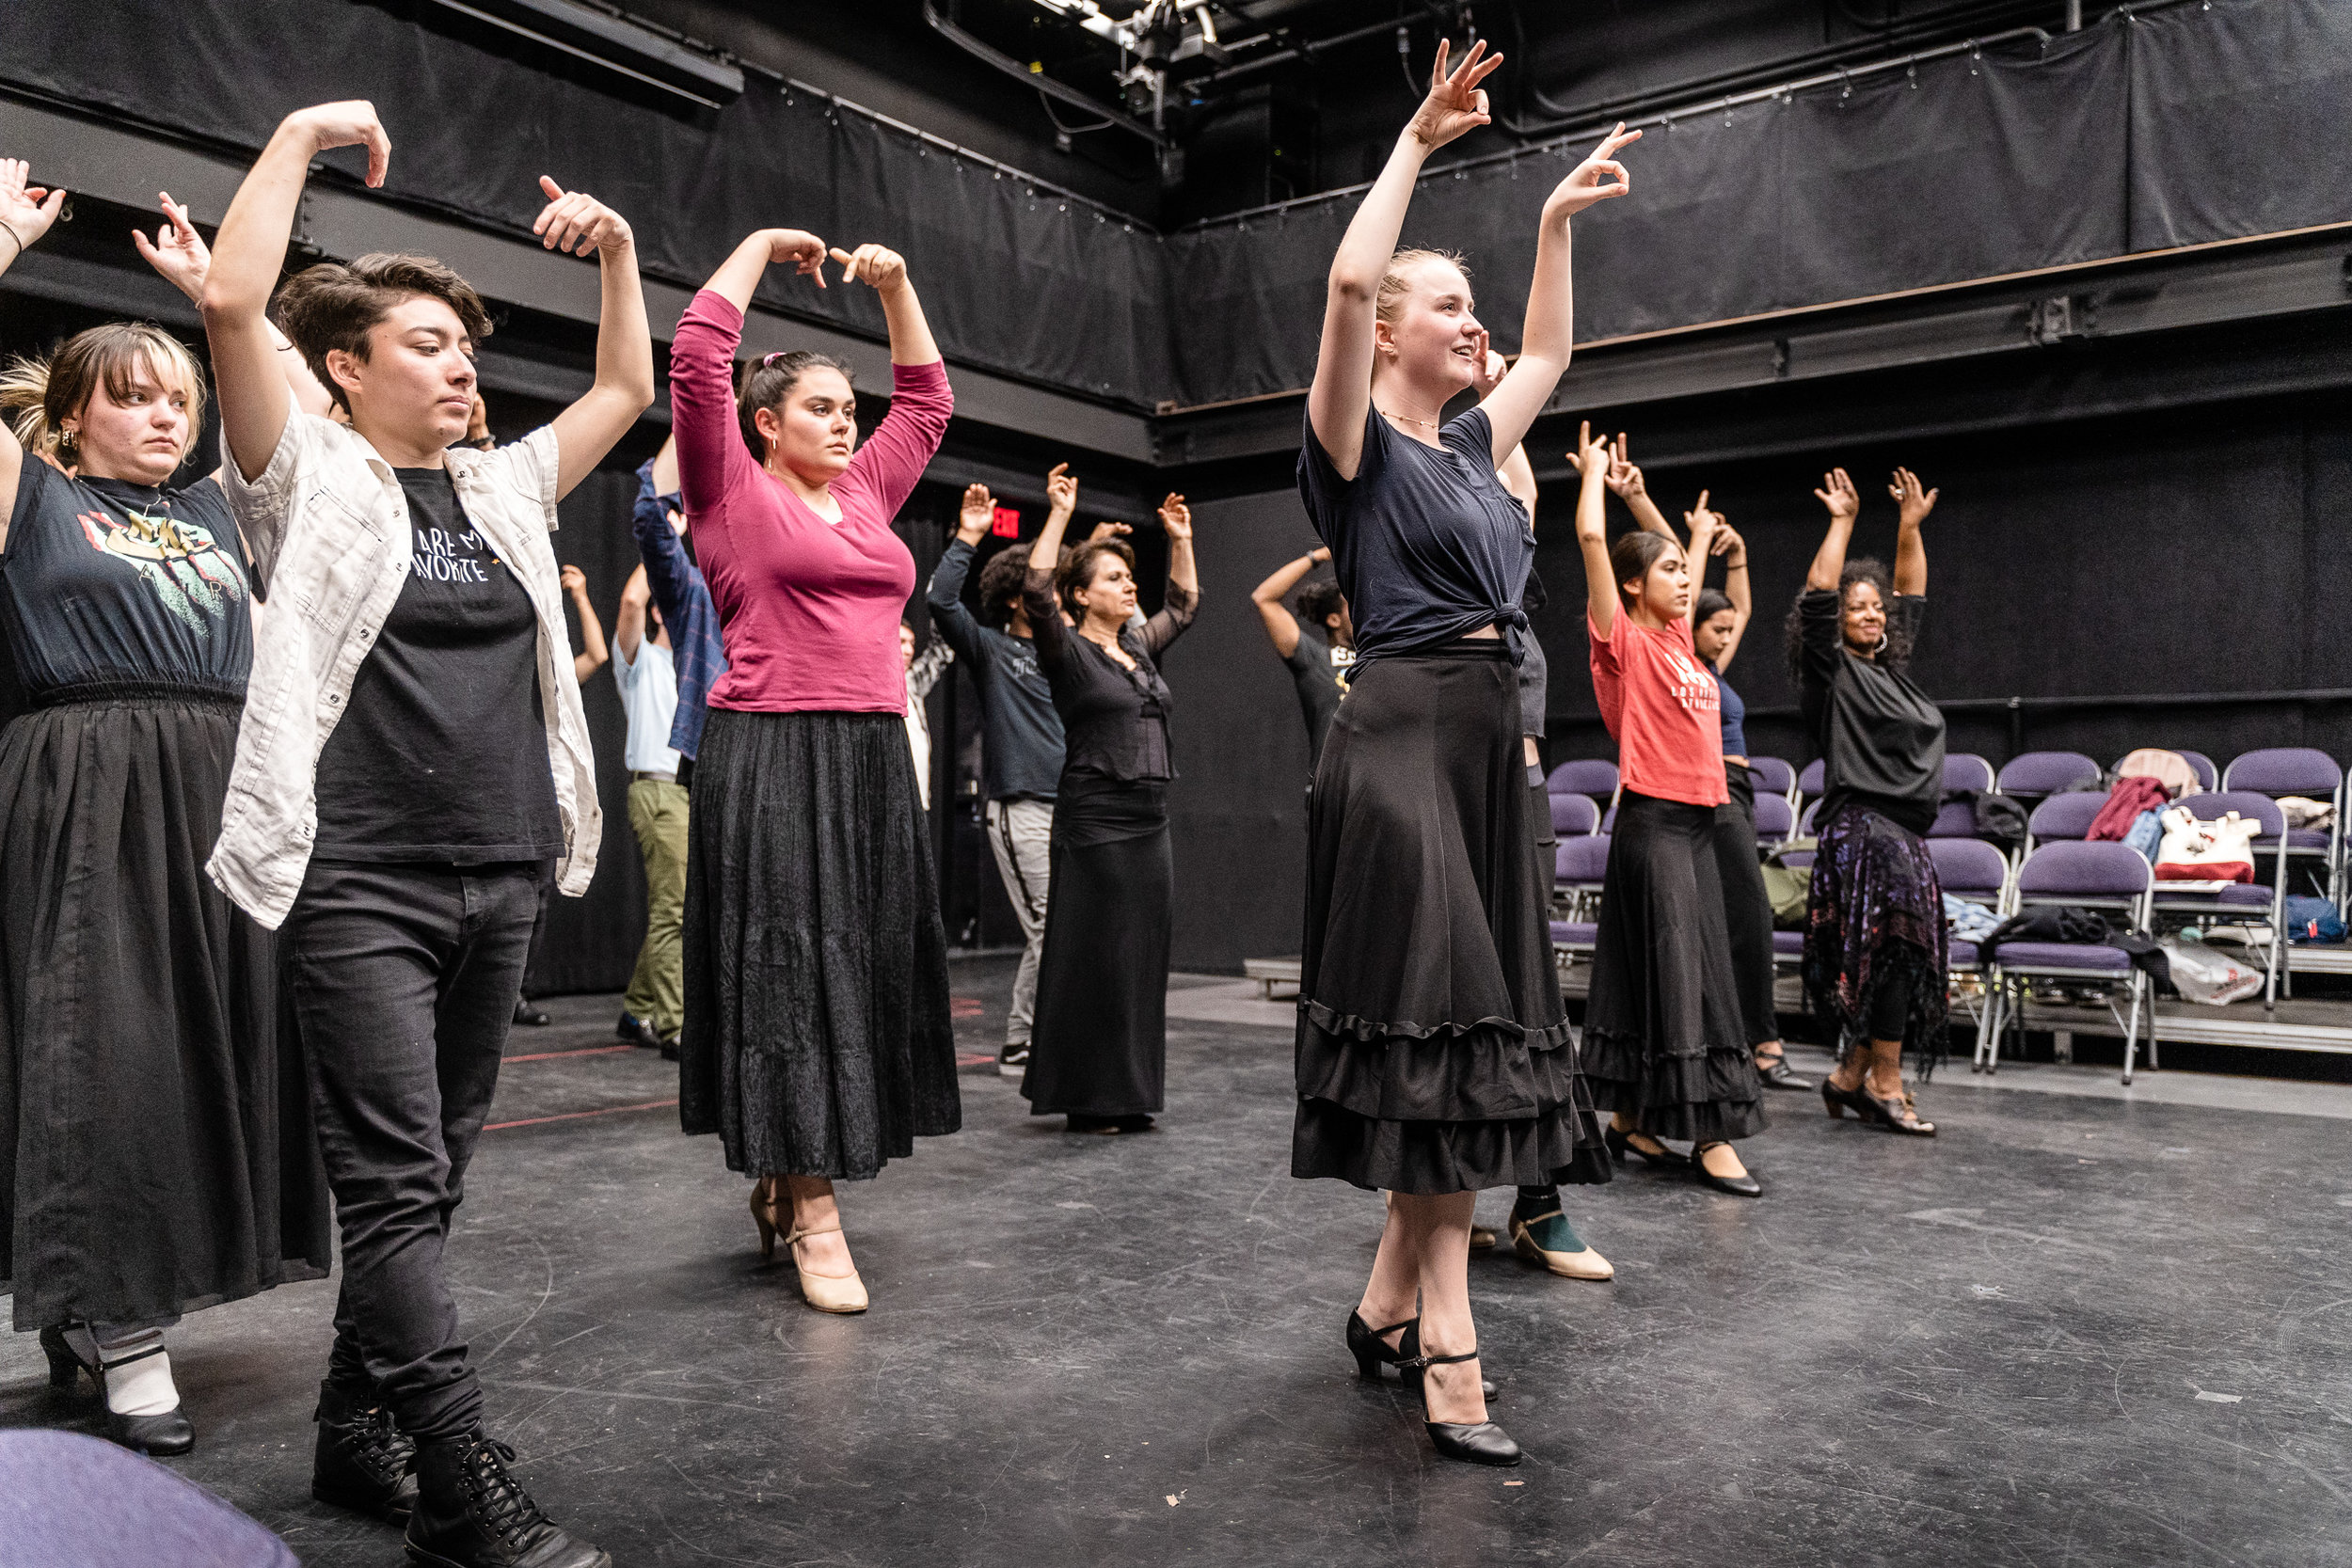 The cast of Flamenco Macbeth, an adaptation of William Shakespeare's Macbeth by SMC Theatre Arts department chair Perviz Sawoski, rehearsing dance moves in SMC's Studio Stage on Thursday, March 21, 2019. Flamenco Macbeth will premiere and run in this same Studio Stage space from April 26 through May 5, 2019. (Glenn Zucman/The Corsair)